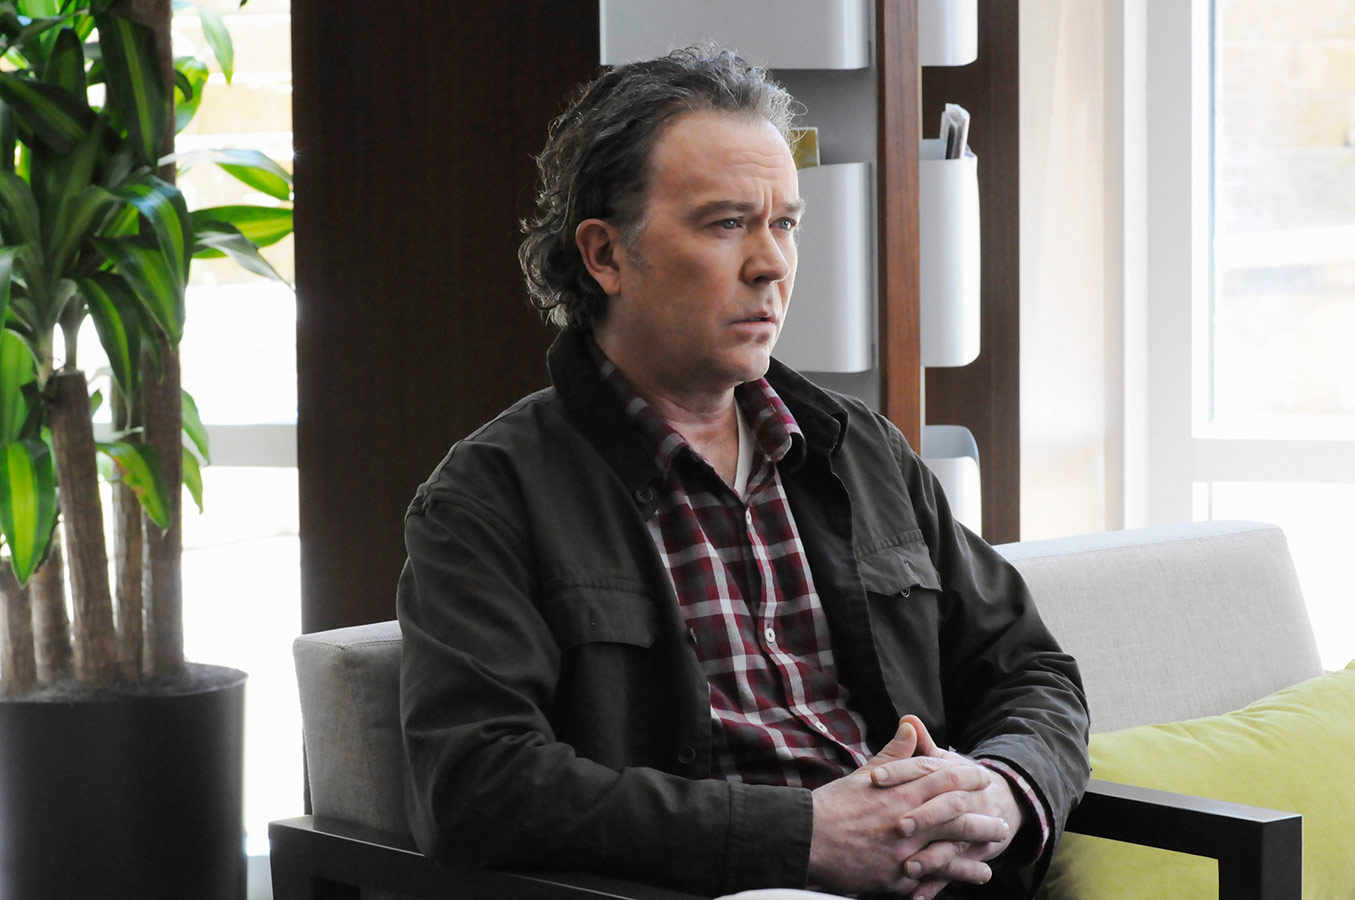 American Crime Episode 8 How I'd Help Russ Get Over His Guilt